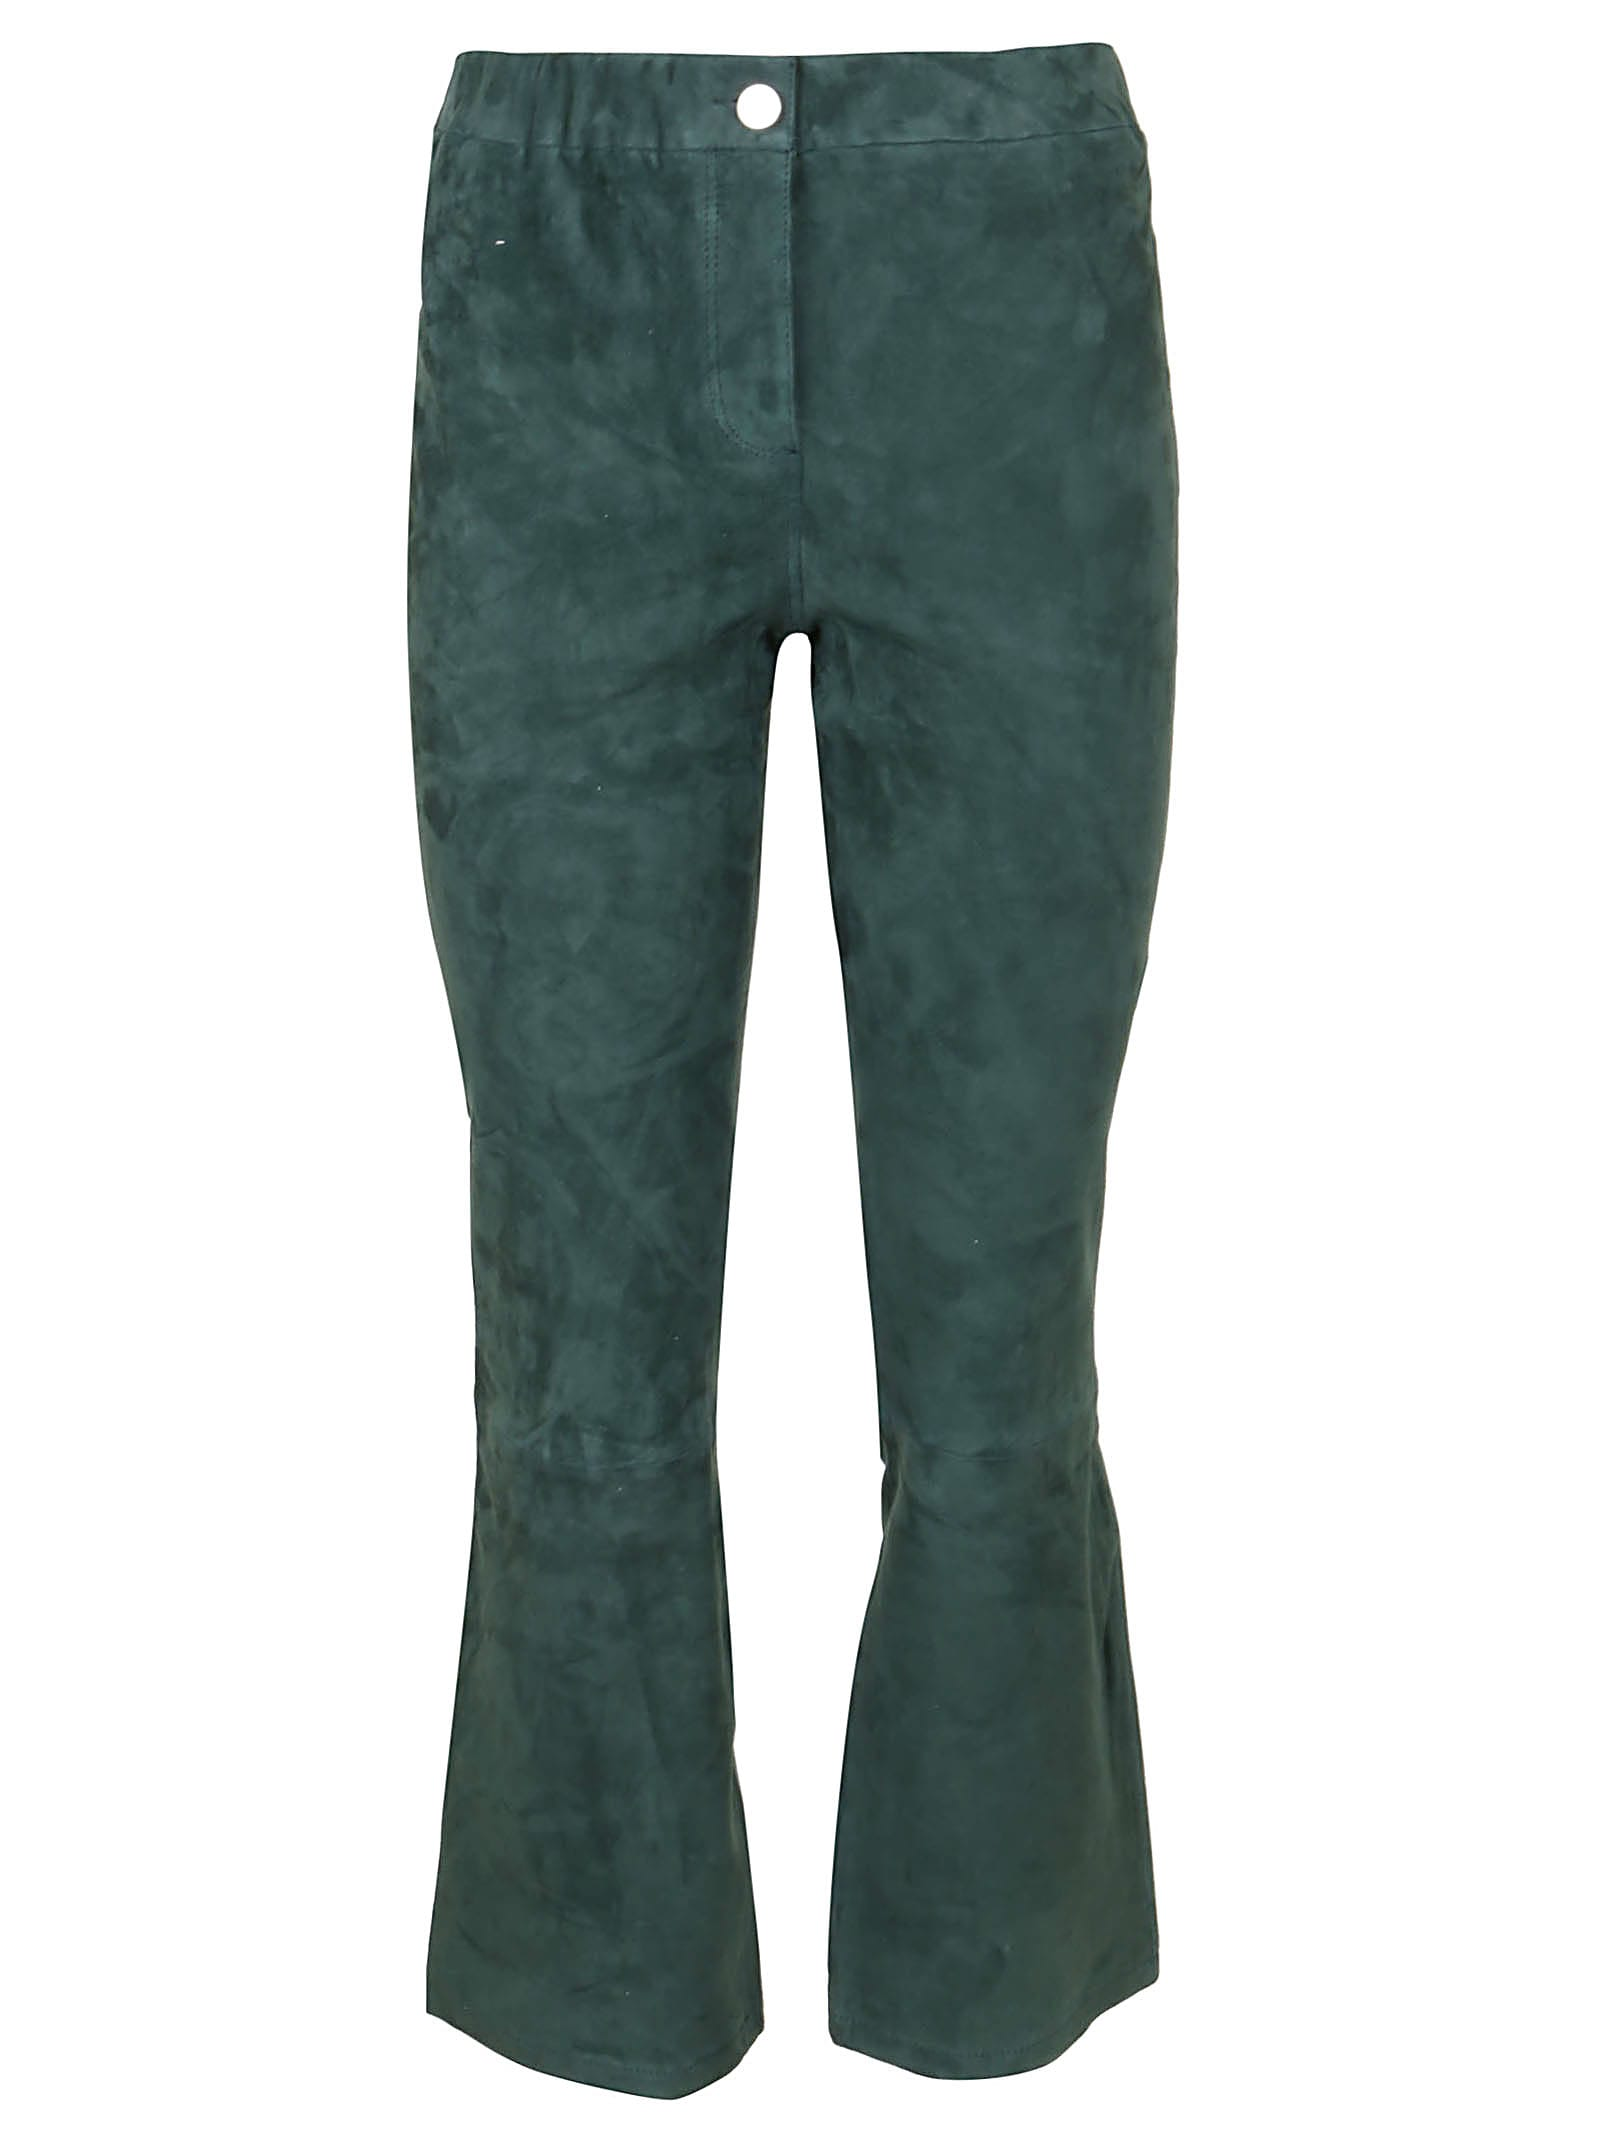 ARMA Lively Stretch Suede Pants